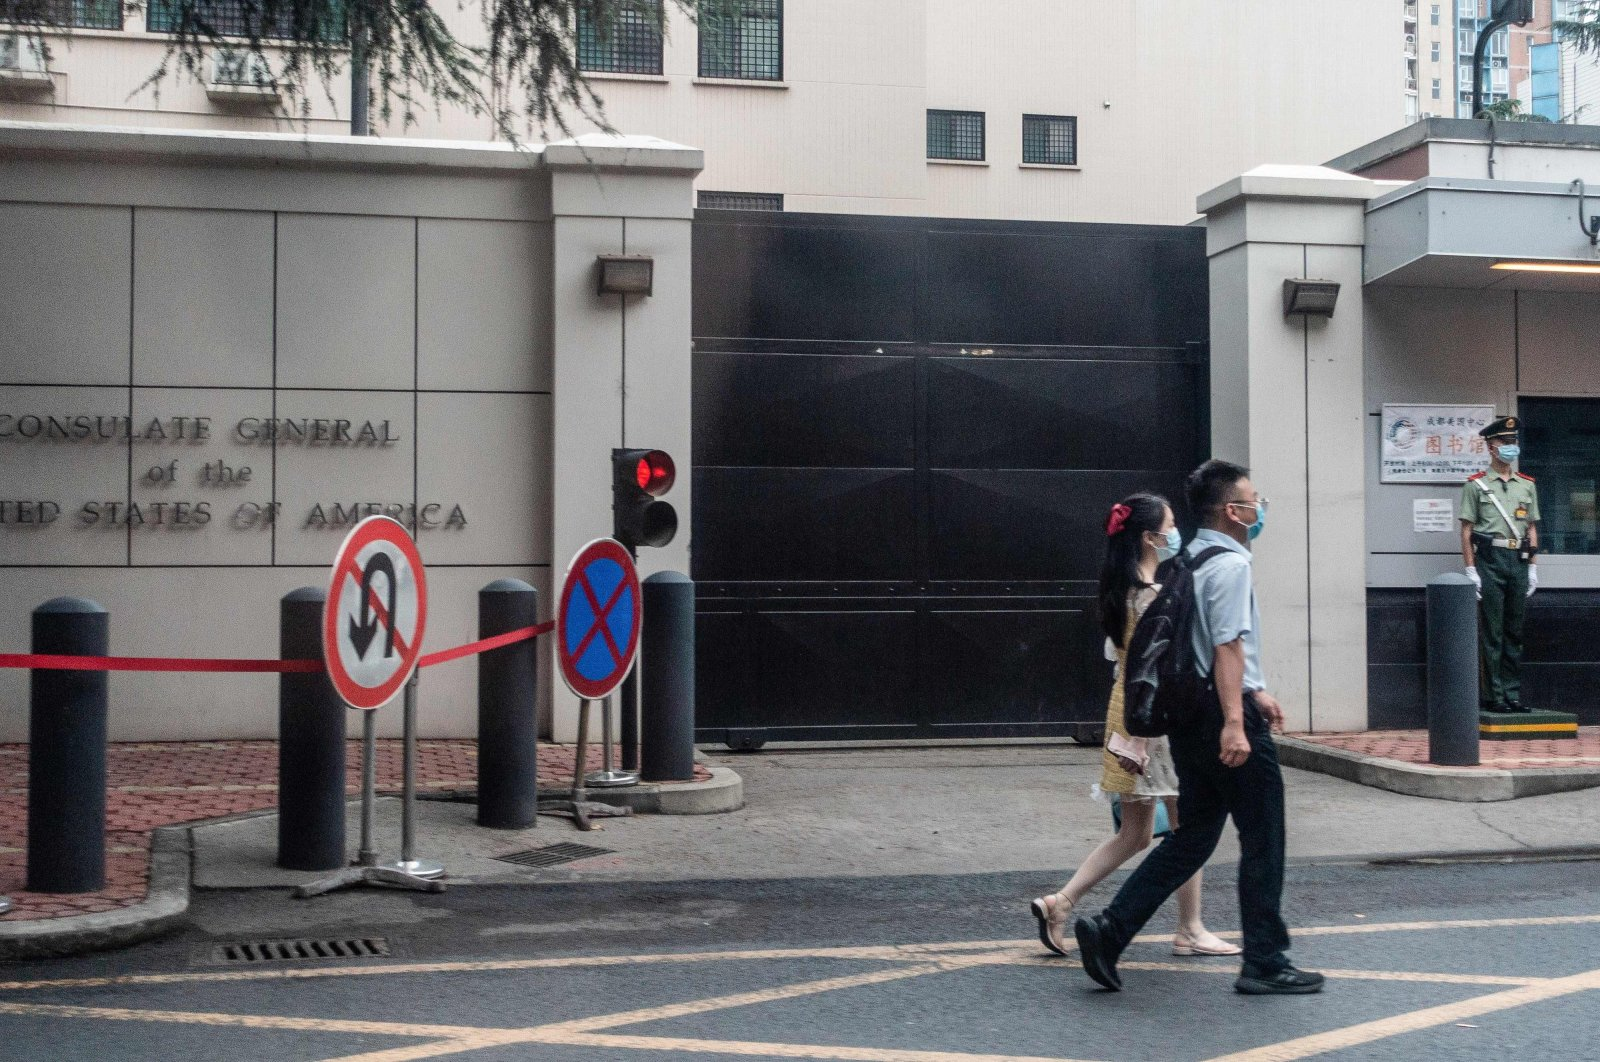 People walk past the entrance of the U.S. consulate in Chengdu in southwest China's Sichuan province, July 23, 2020. (AFP Photo)